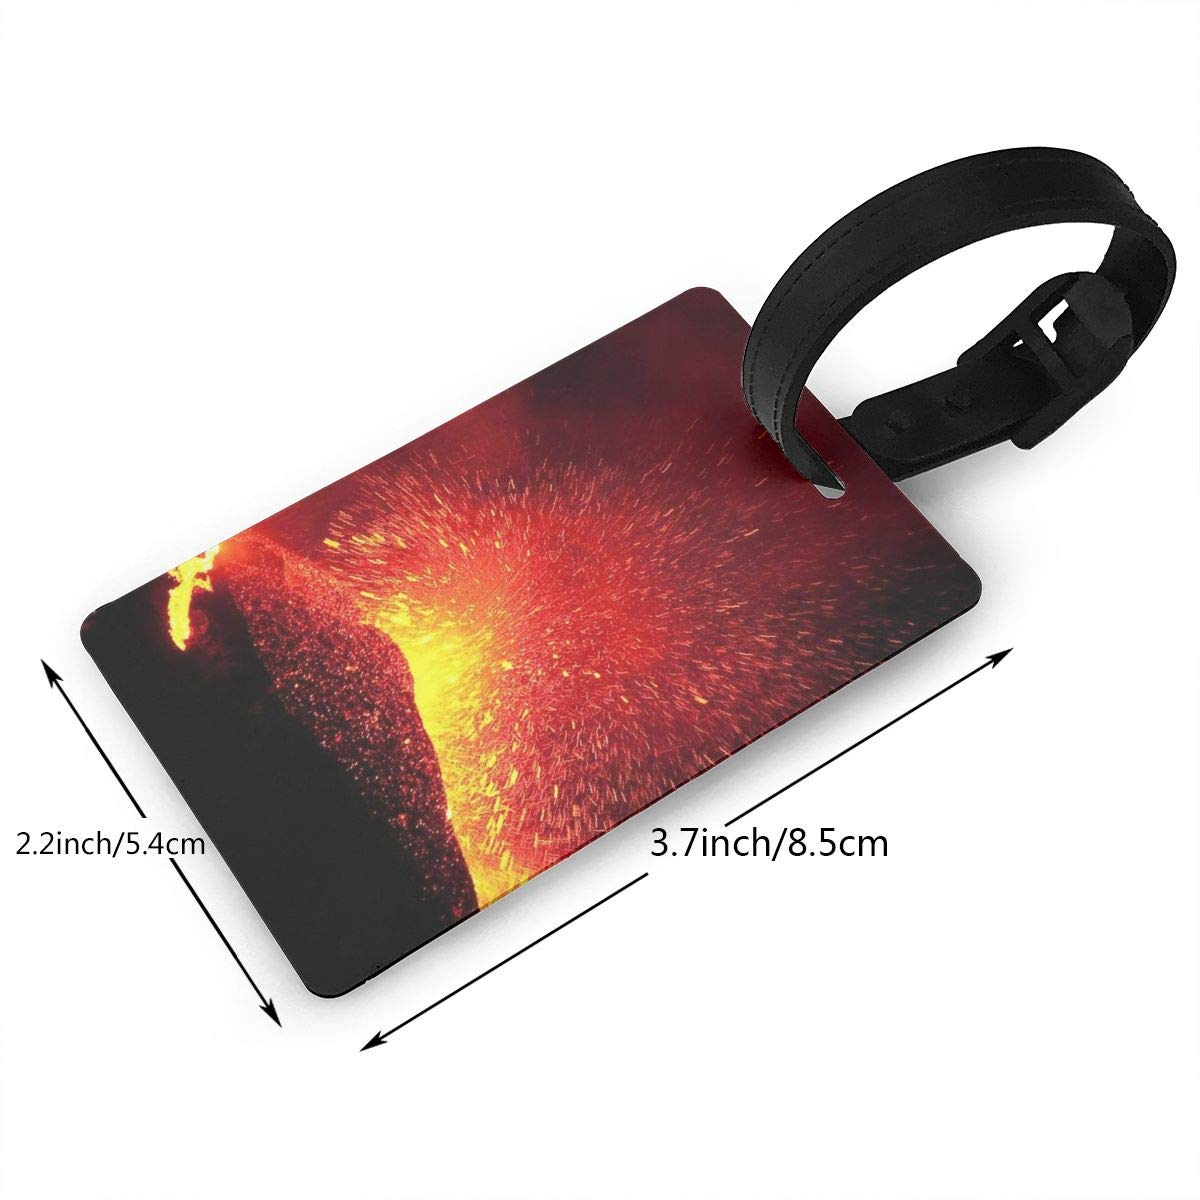 2 Pack Luggage Tags Volcano Erupting Cruise Luggage Tag For Travel Tags Accessories